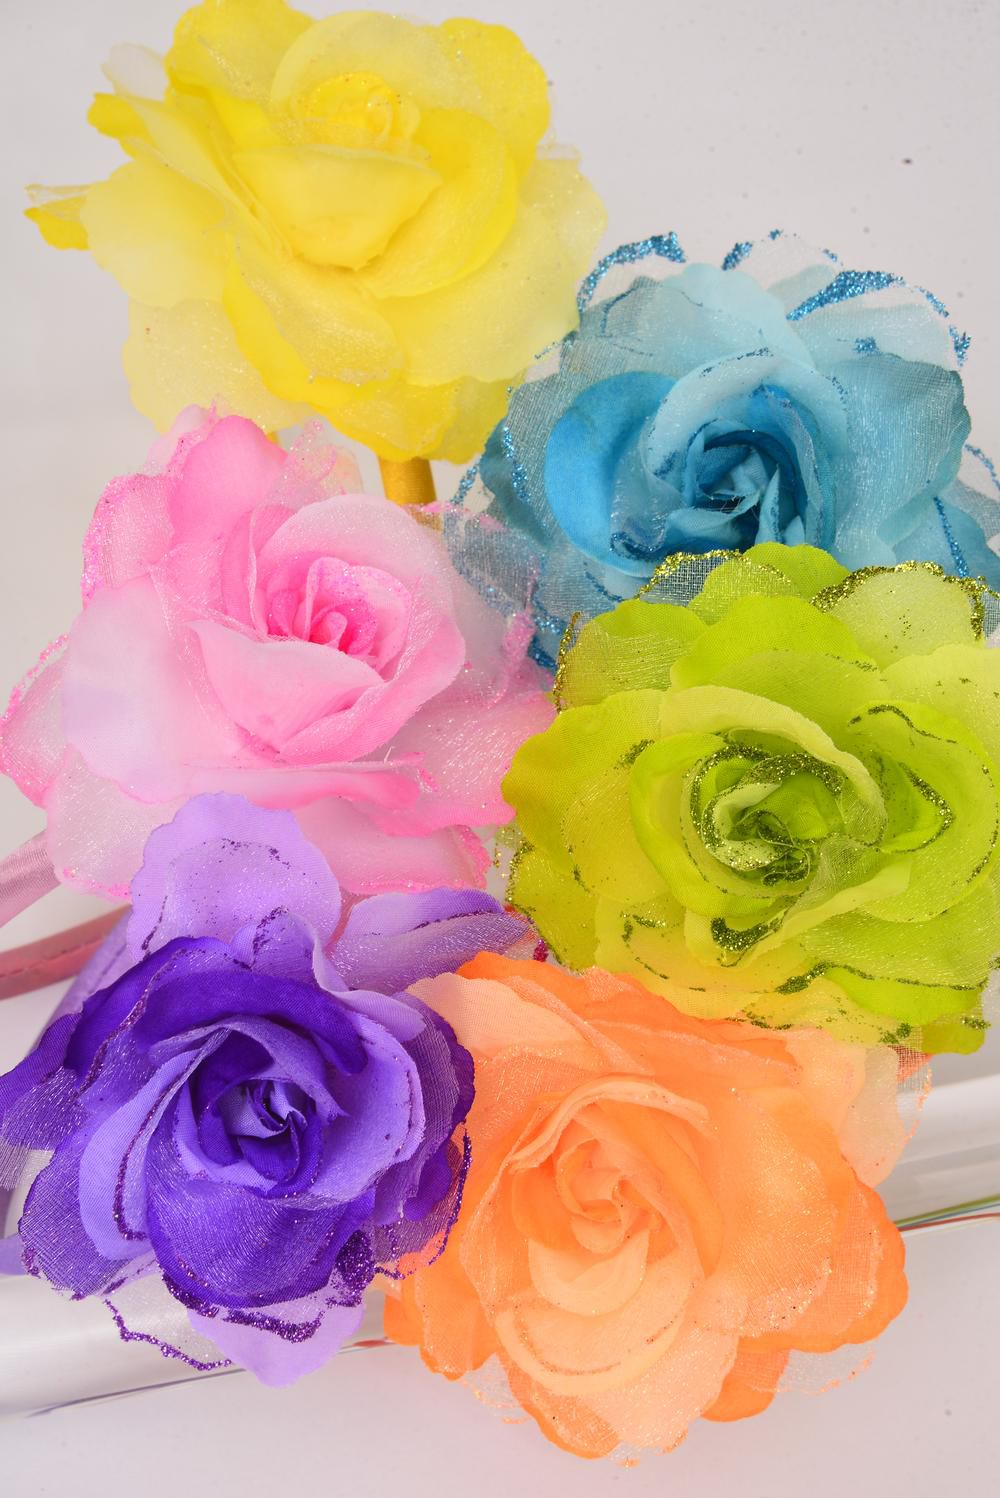 "Headband Horseshoe Satin 2 tone Rose Glitters/DZ Rose-4.5"",Color-2 Pink,2 Blue,2 Yellow,2 Purple,2 Orange,2 Lime,6 Color Asst,Hang Tag & UPC Code,W Clear Box"